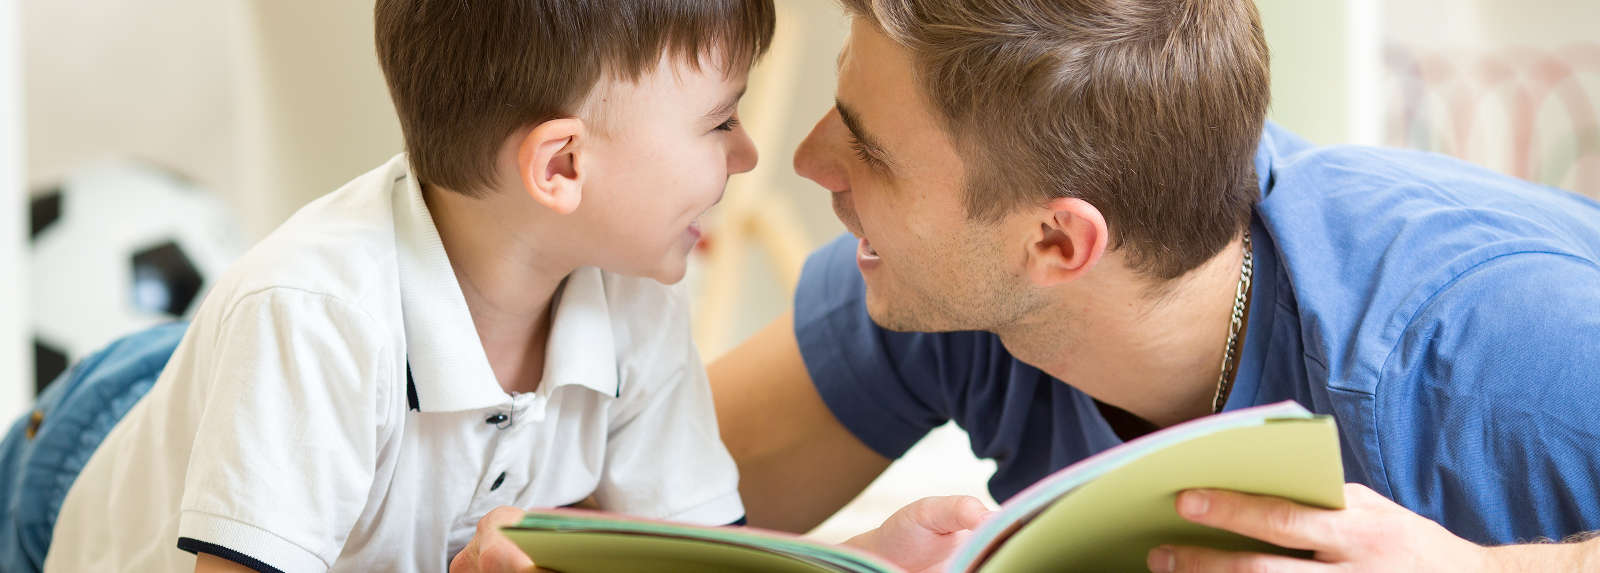 Man Helping Child Read